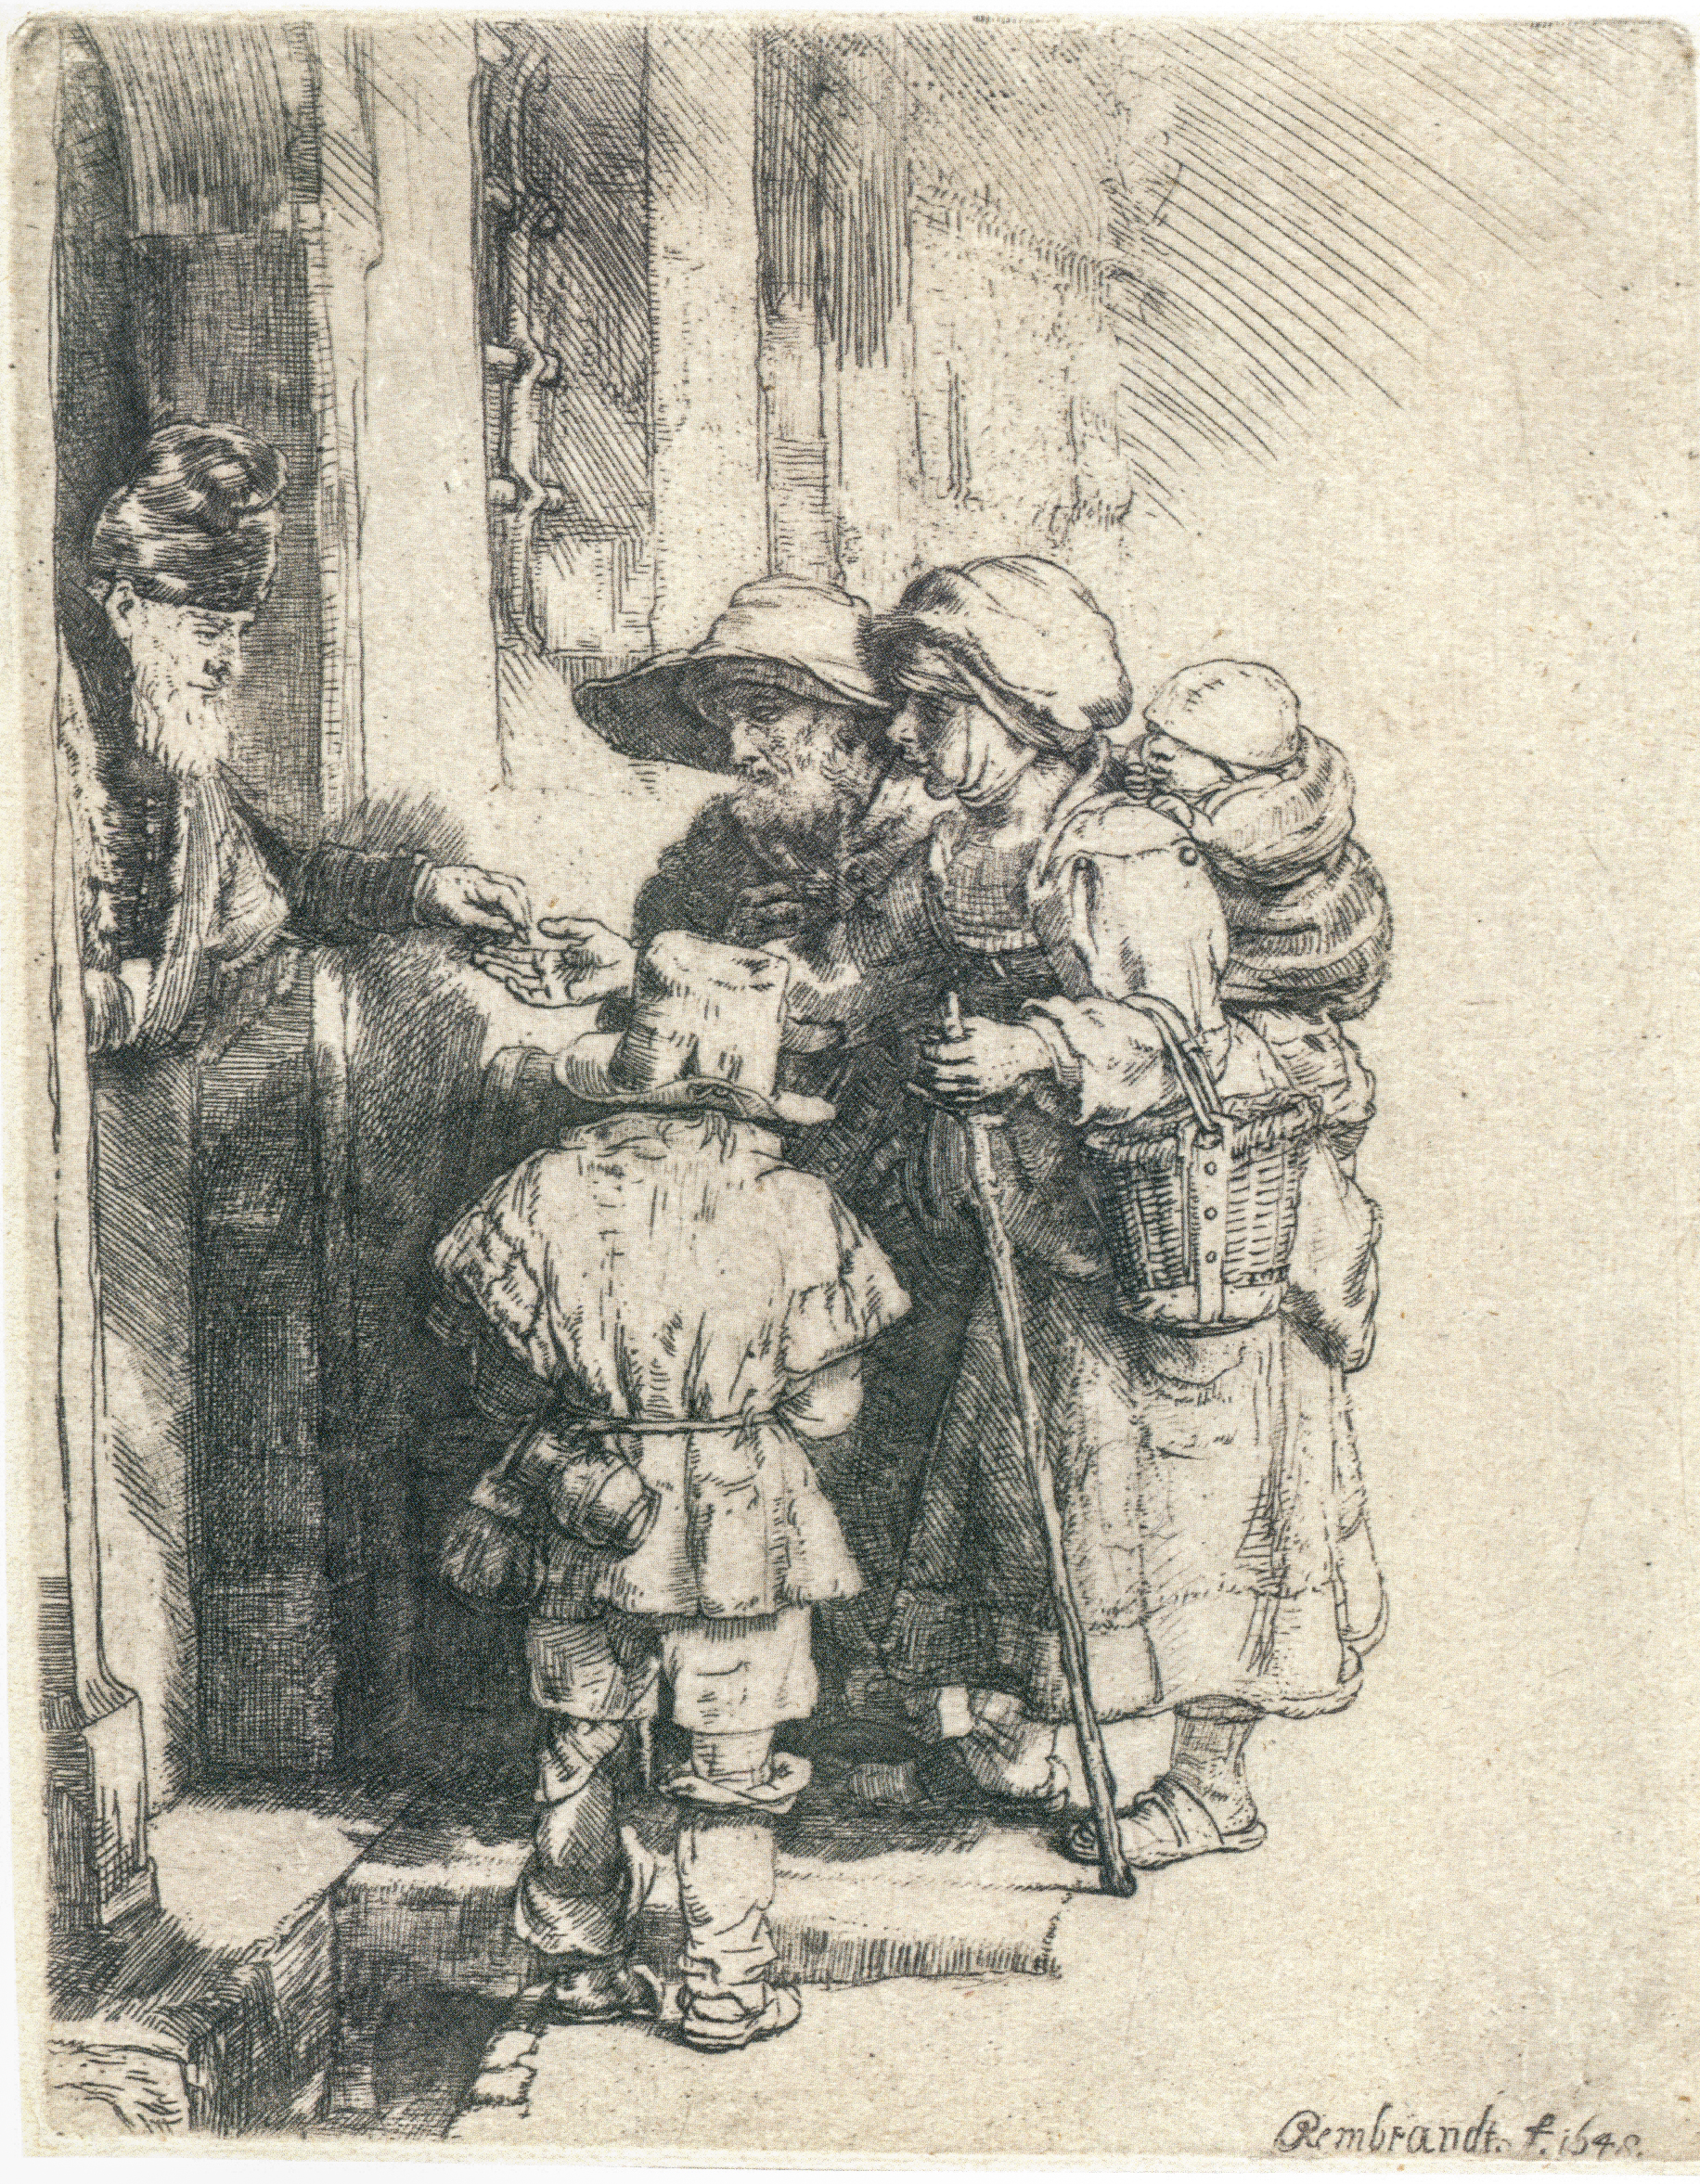 FileRembrandt - Beggars Receiving Alms at the Door of a House.jpg & File:Rembrandt - Beggars Receiving Alms at the Door of a House.jpg ...